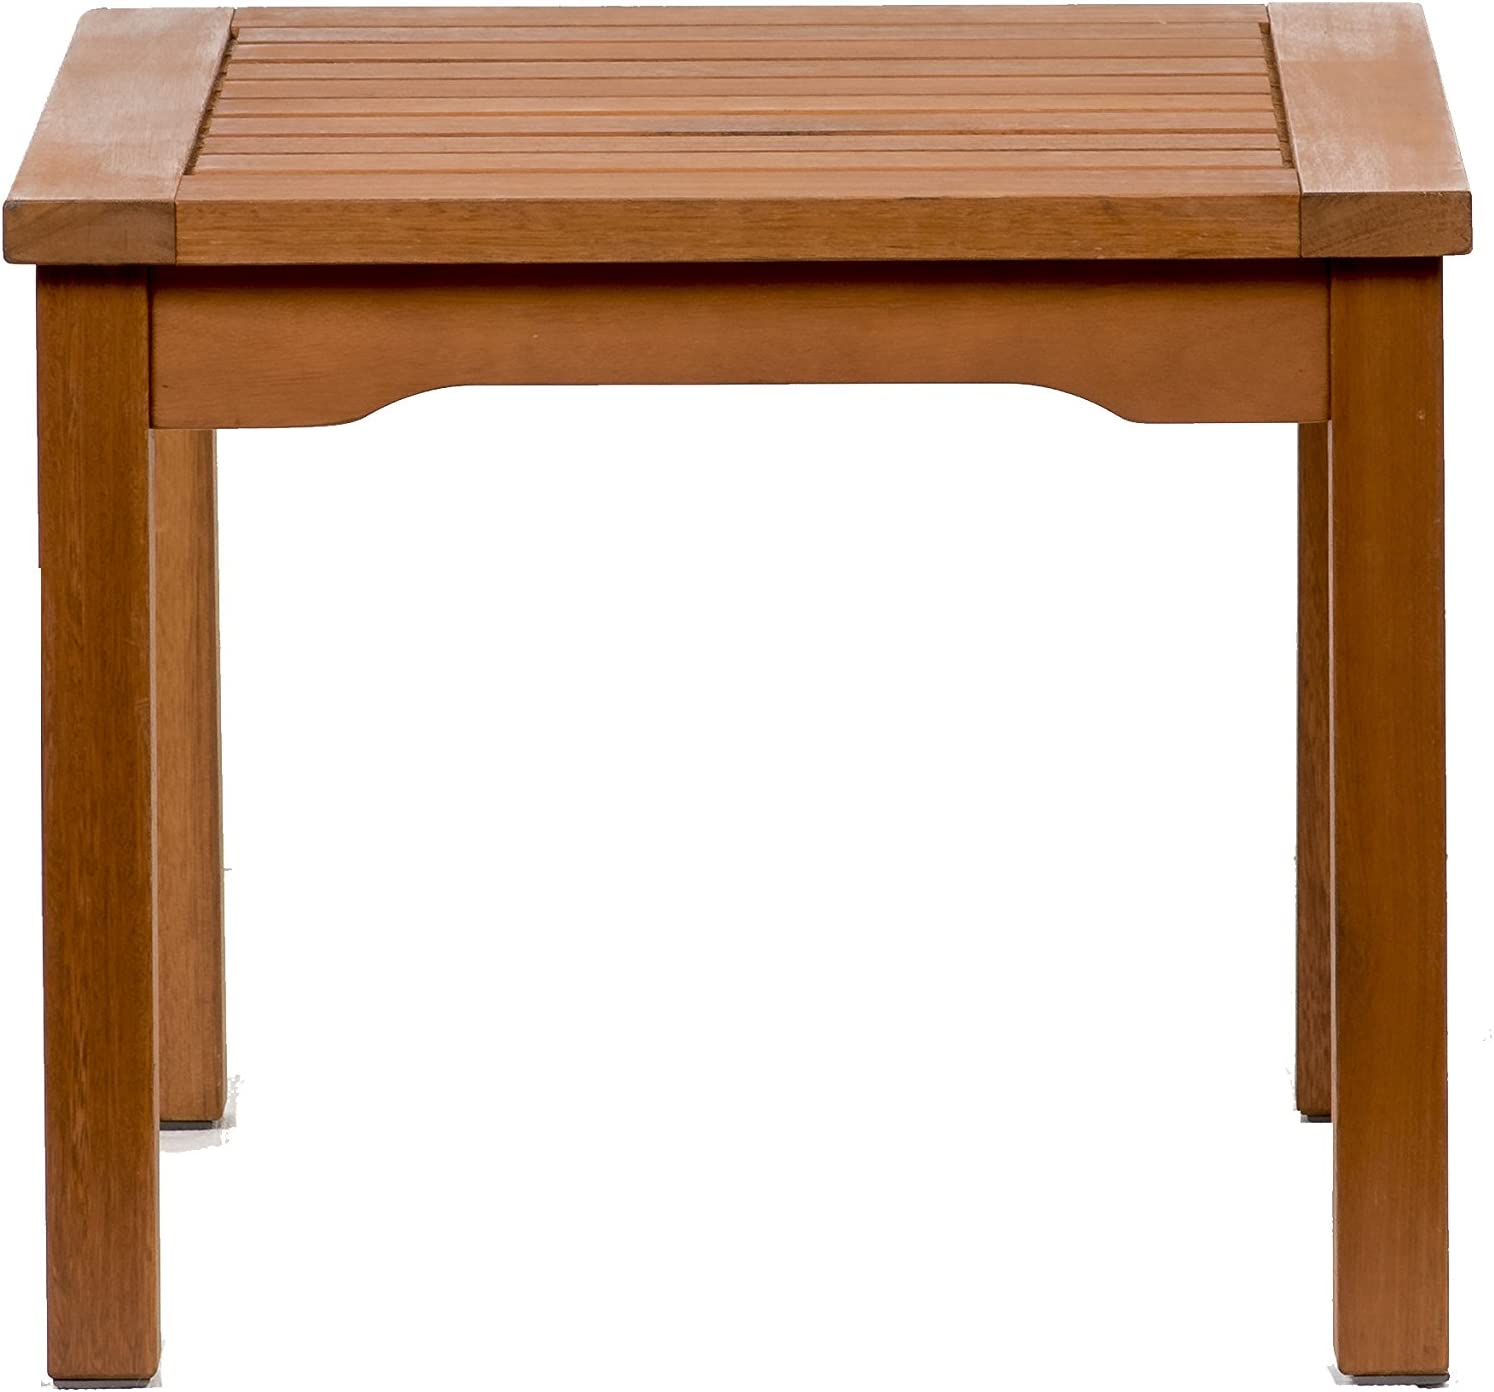 Amazonia Square and Durable Side Table Super Quality Eucalyptus Wood Perfect for Patio and backayard